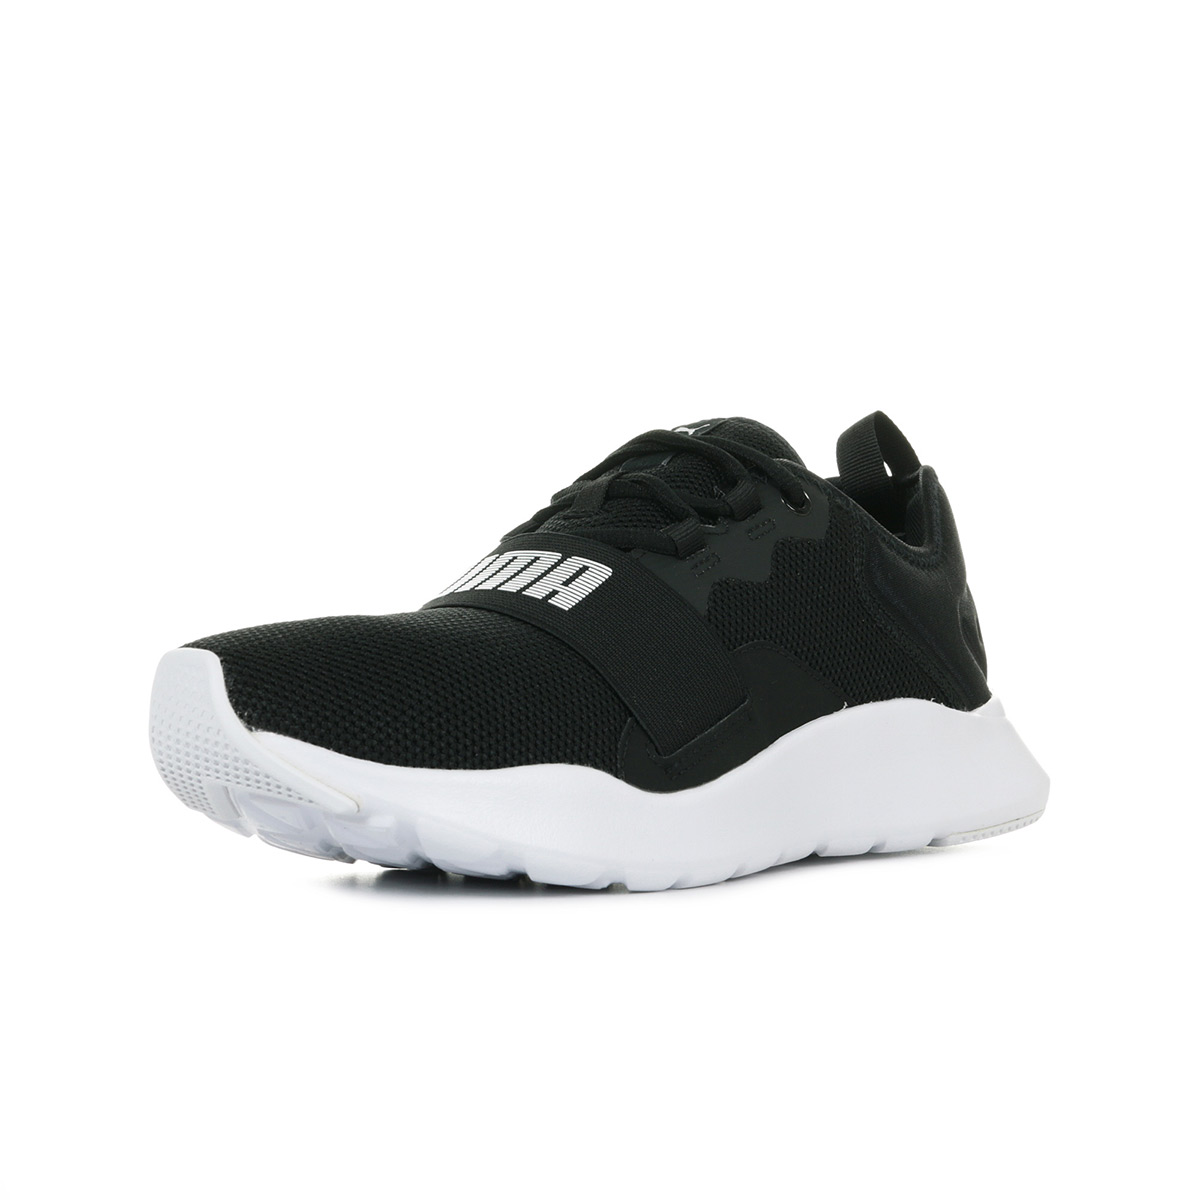 Puma Wired Pro 36912601, Baskets mode homme